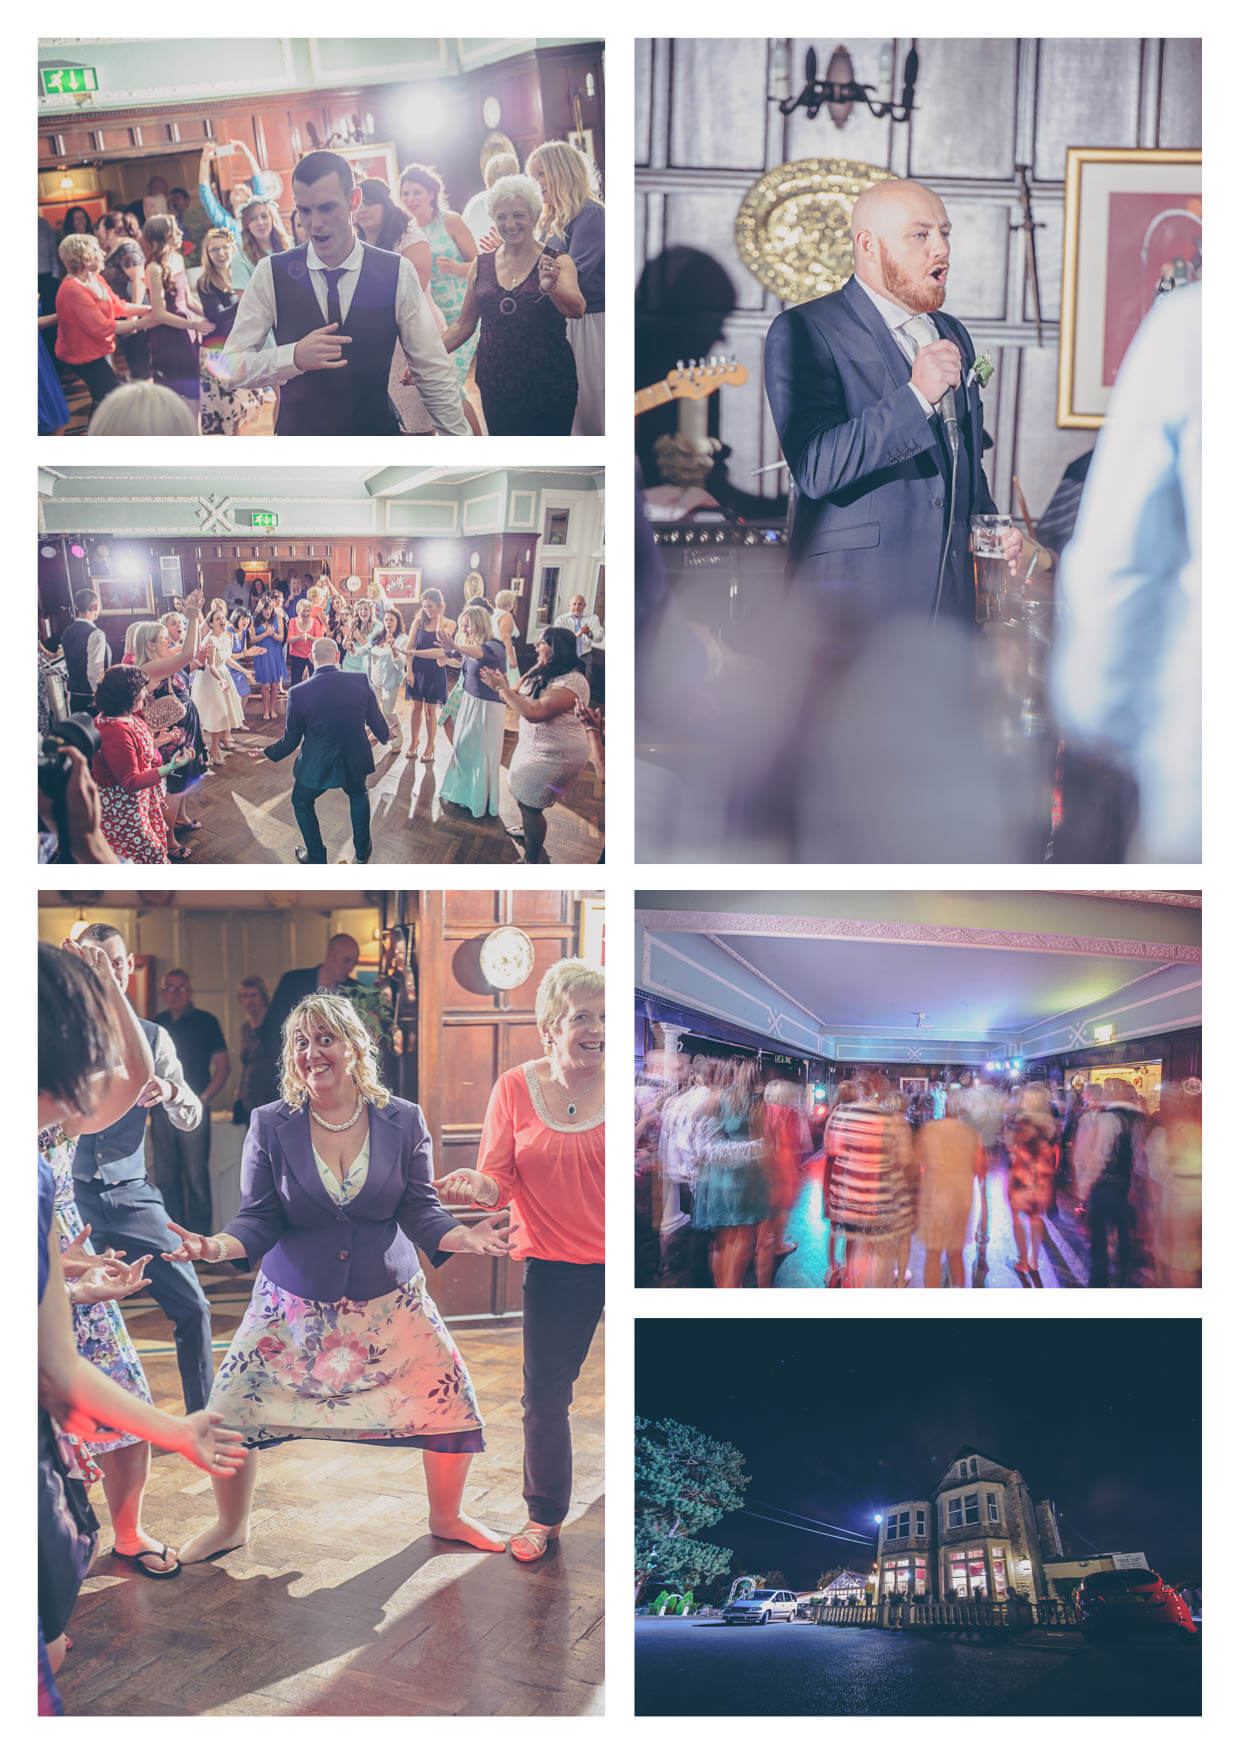 Crazy Dancefloor Photos at Manor House Hotel Penarth Wedding Photographers